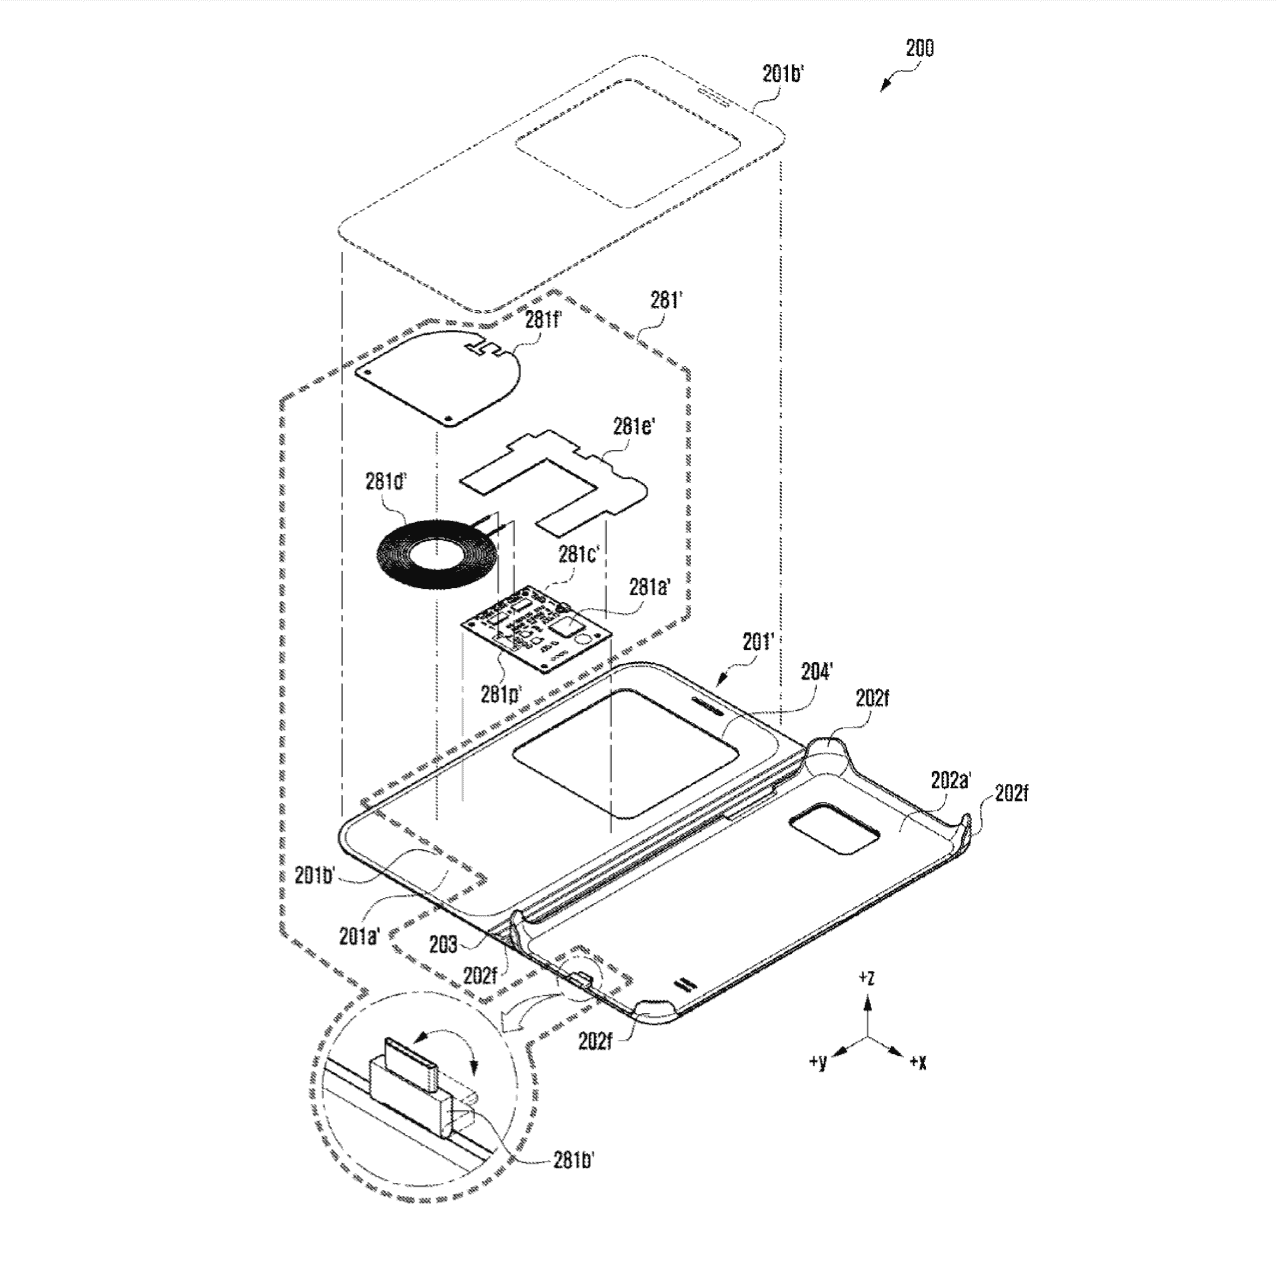 Samsung Wireless Charging Case Patents 9